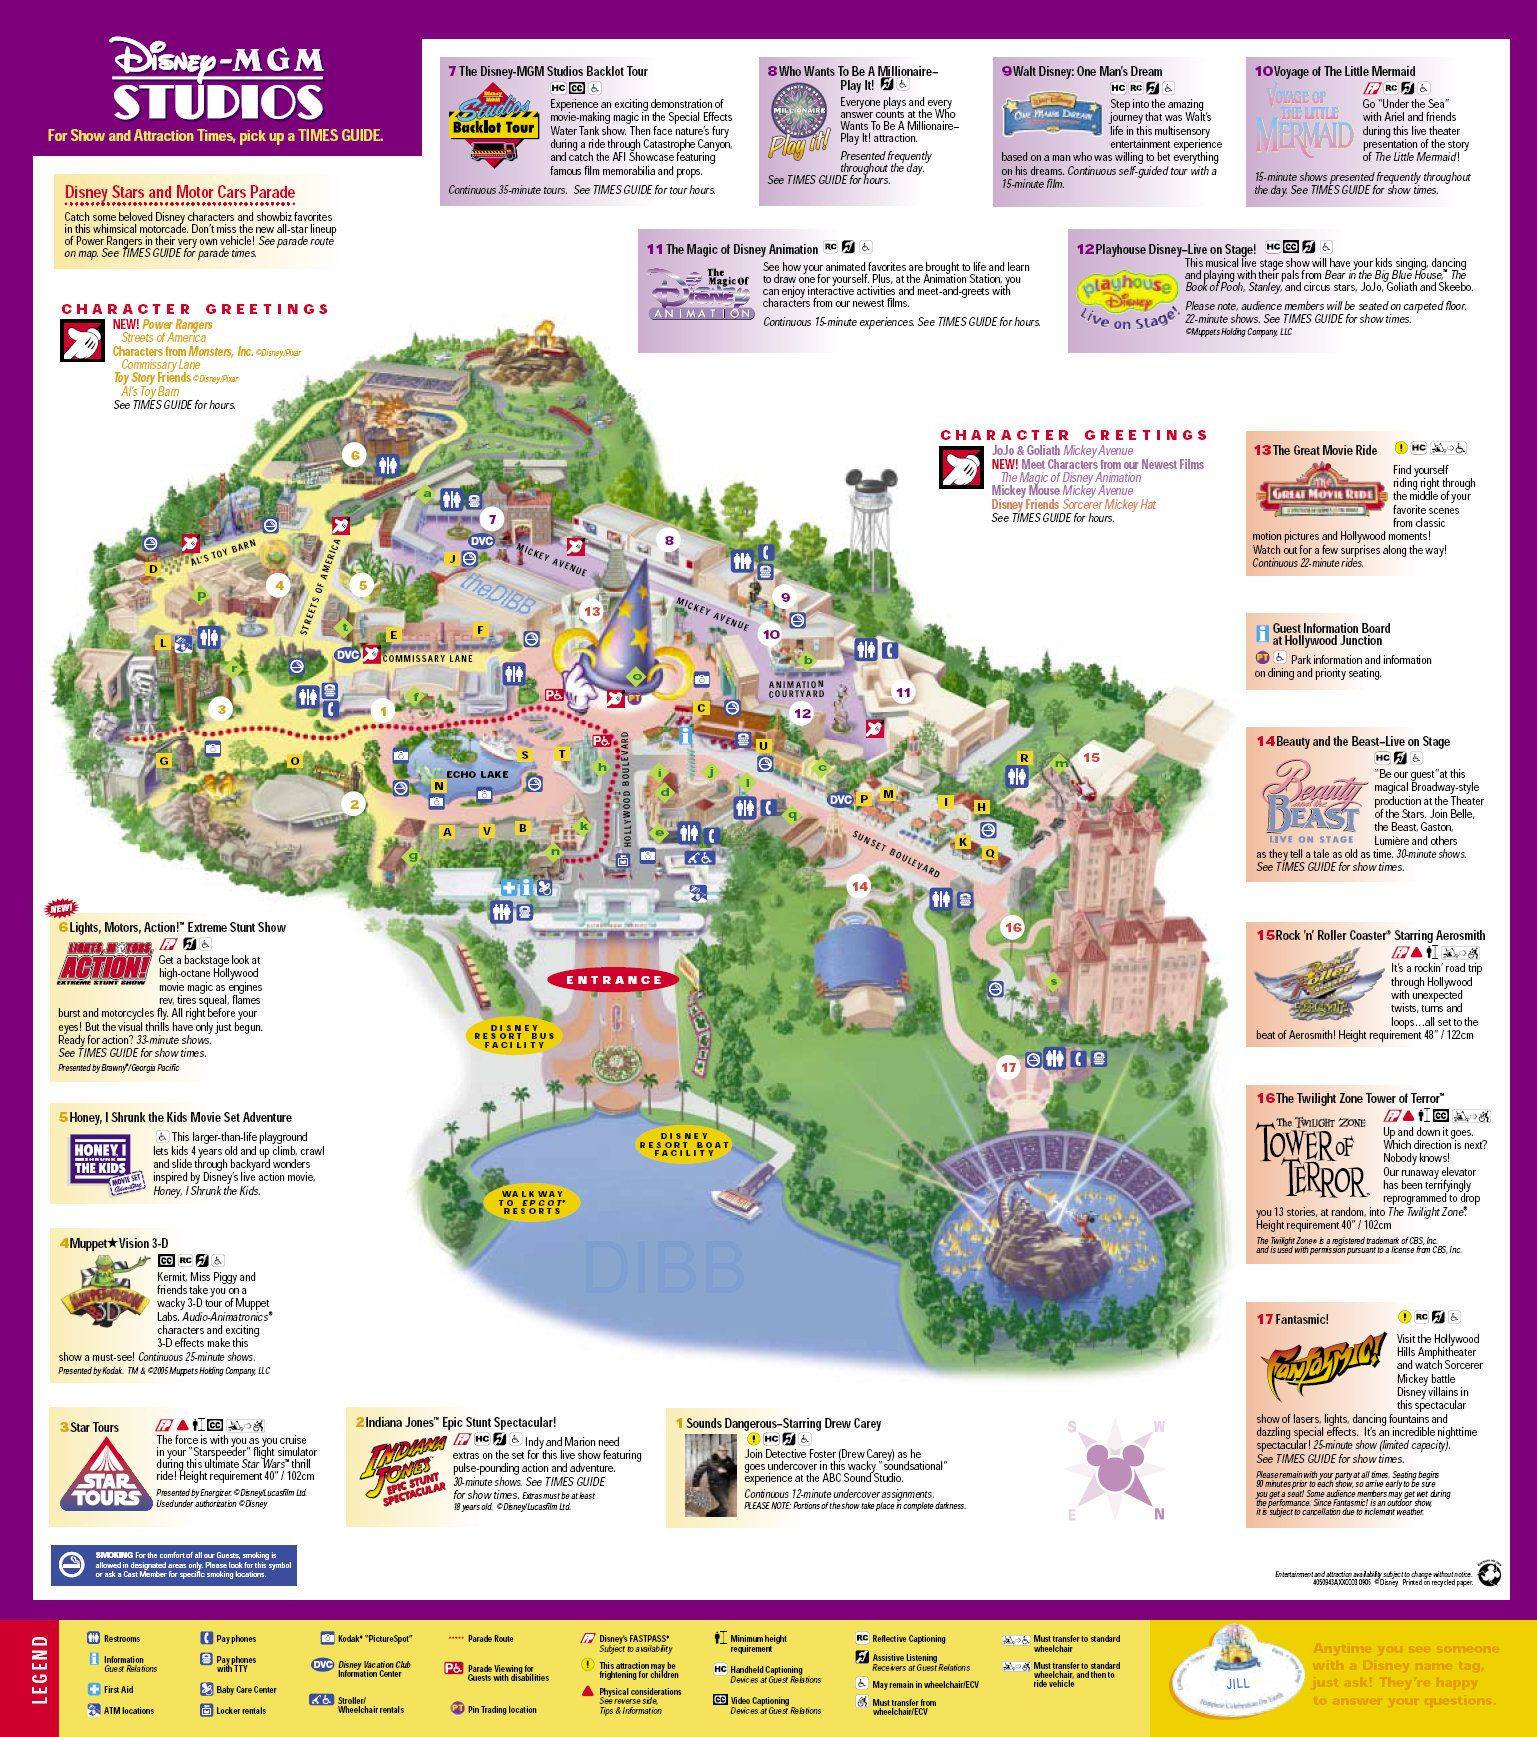 Hollywood Studios map Disney Disneyworld in 2018